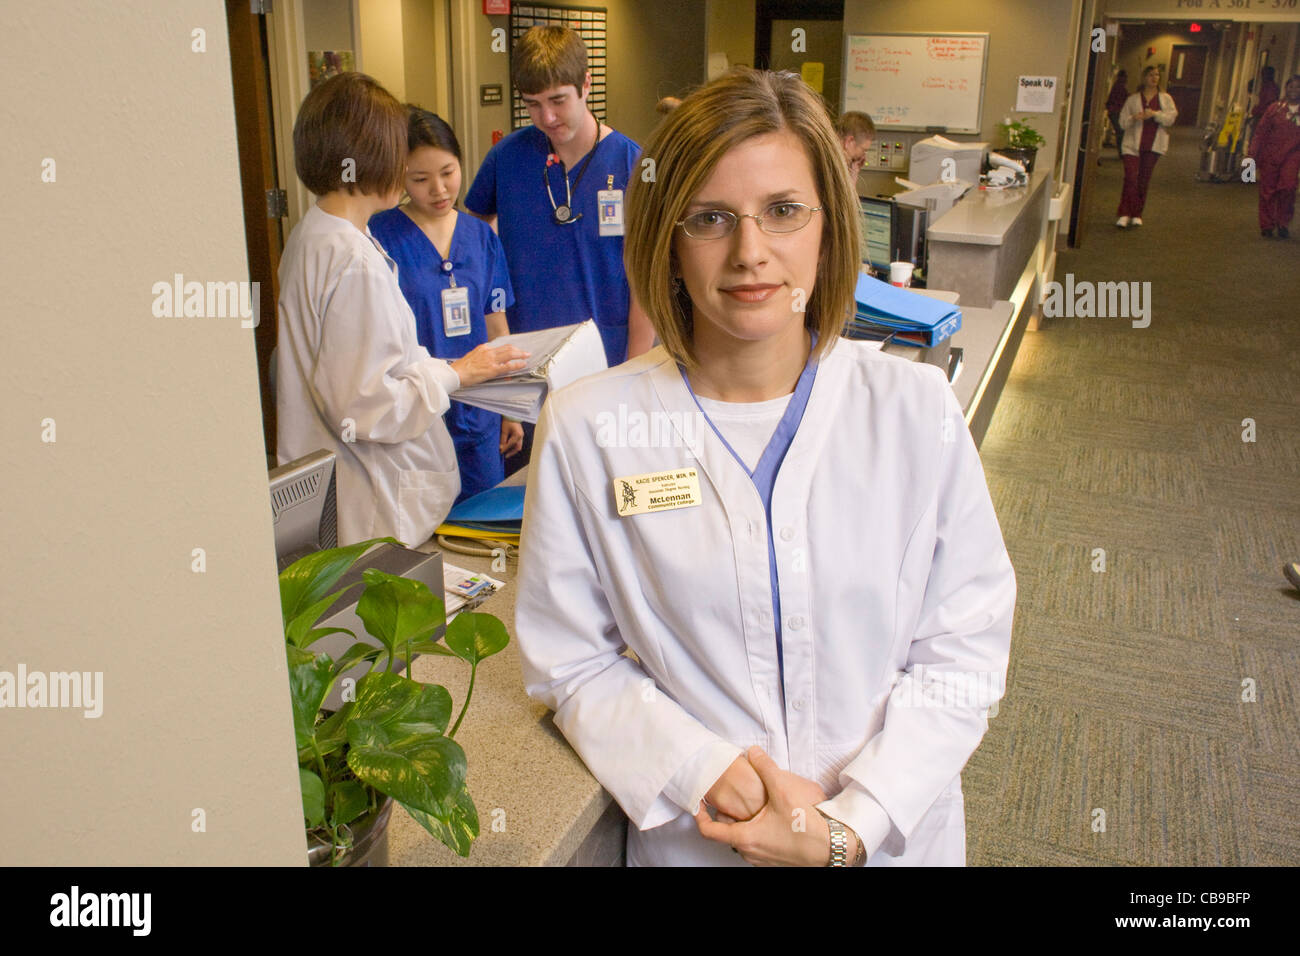 Waco, TX March 12, 2009: Nursing instructor Kacie Spencer, MSN, RN of McClennan Community College with some of her - Stock Image